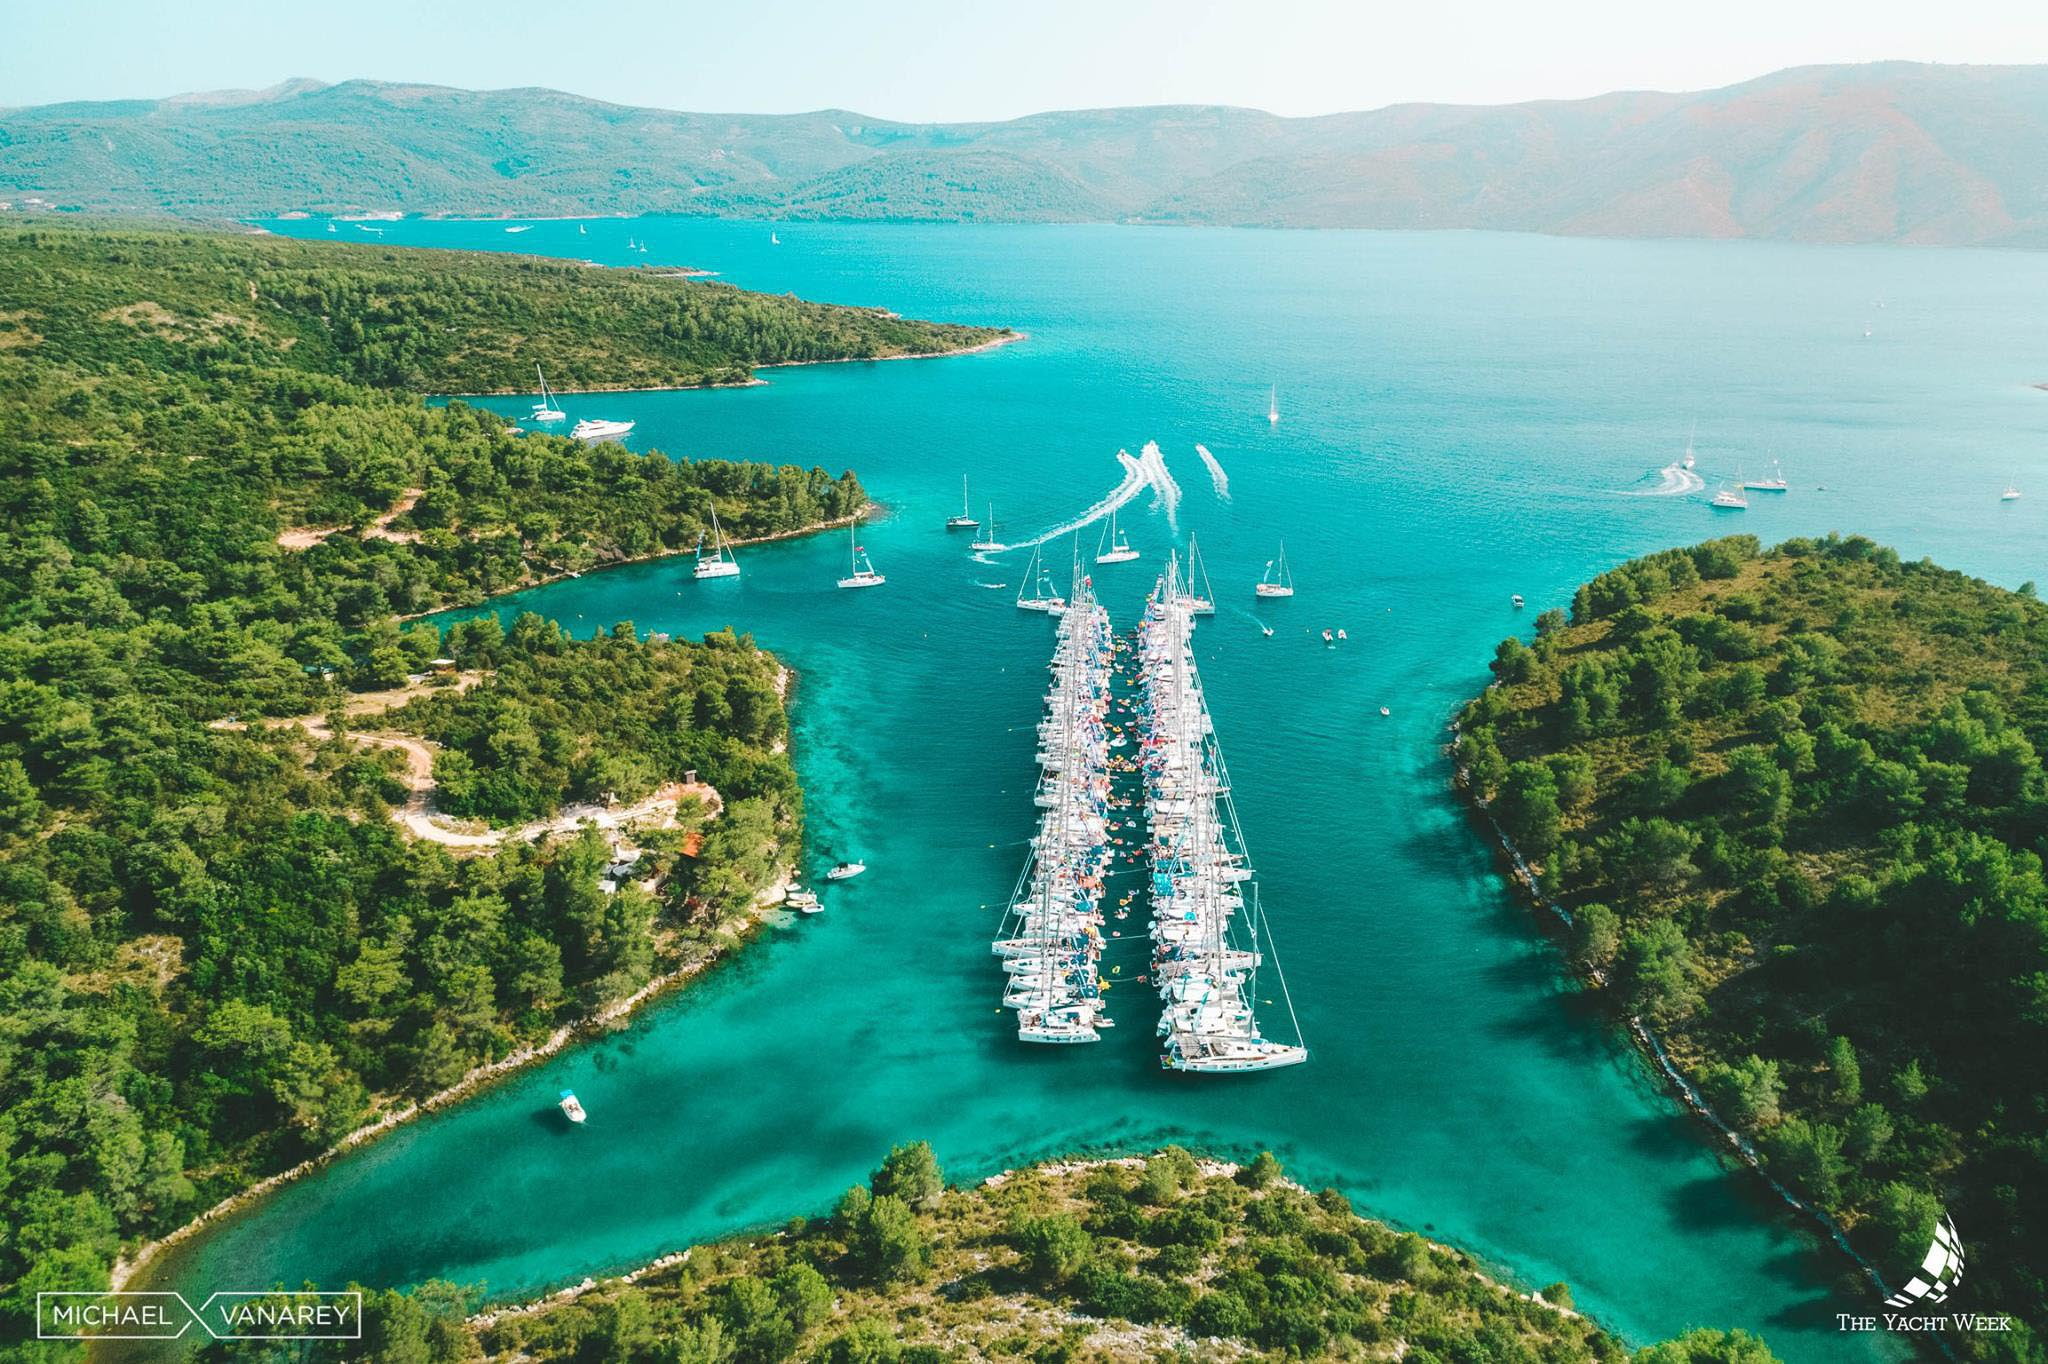 A great 7 days in Europe itinerary option is the Croatian islands